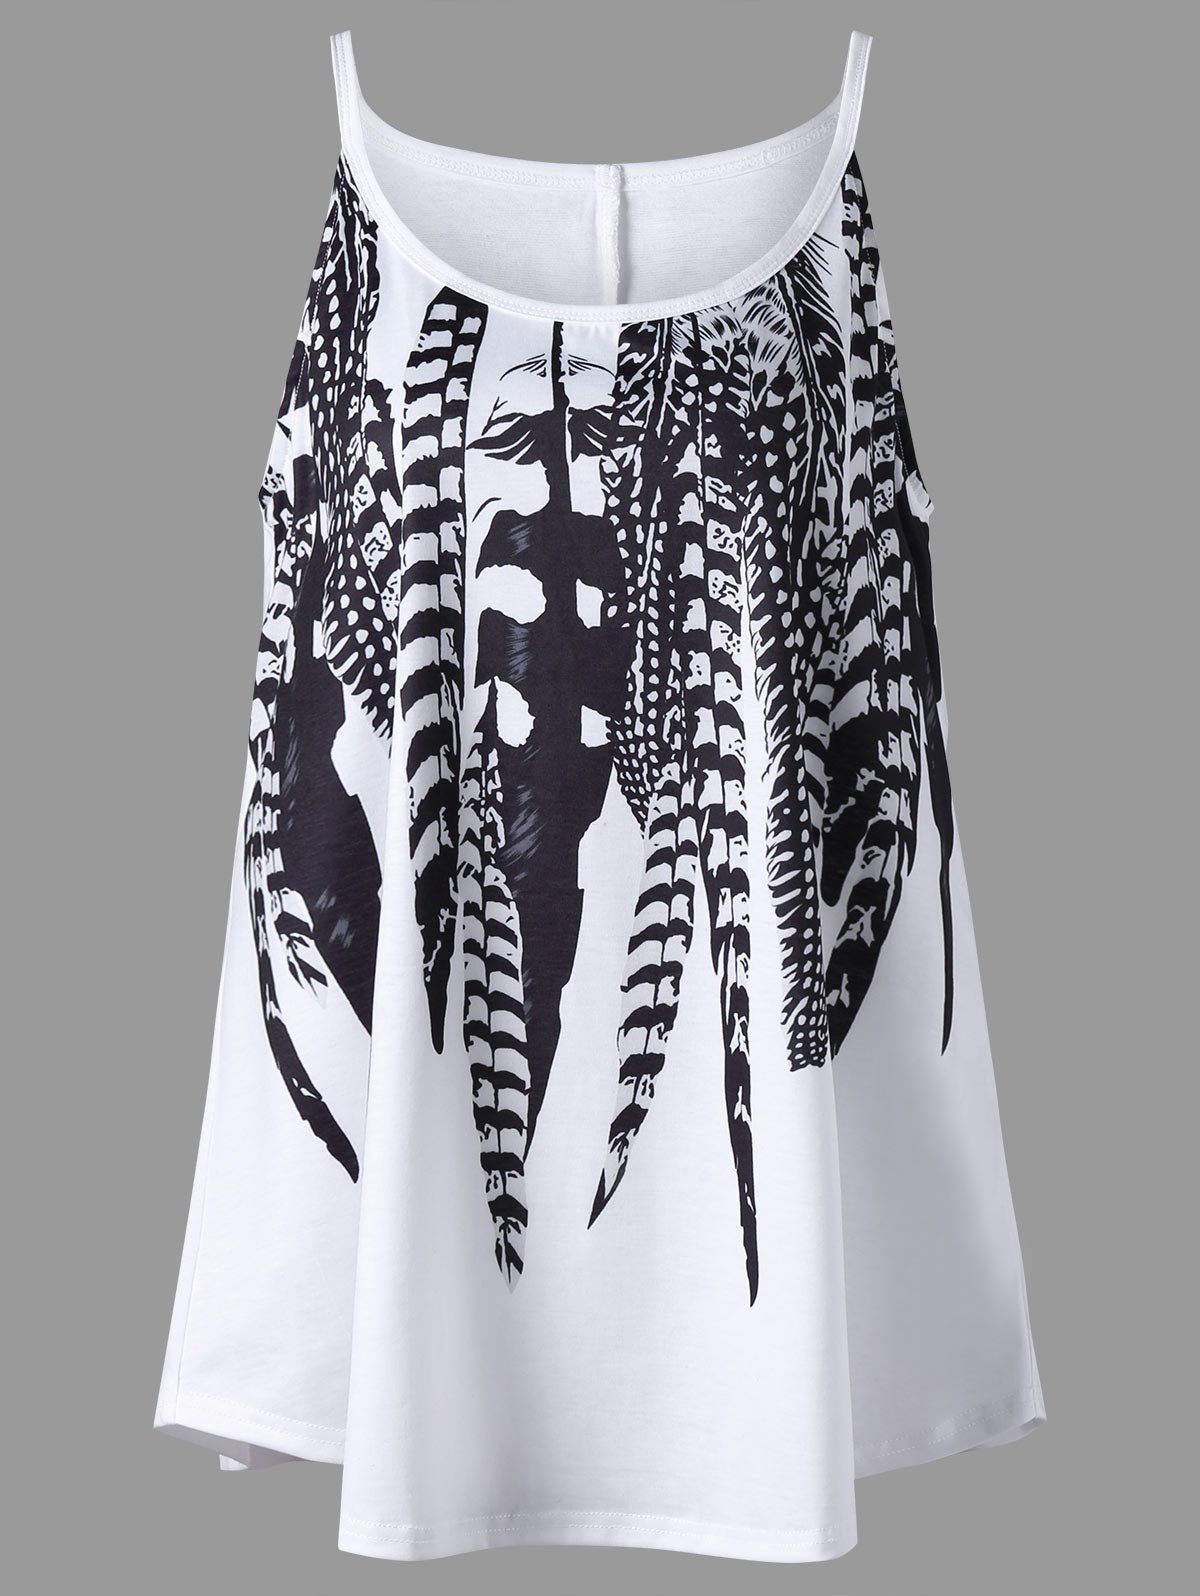 Plus Size Feather Print Cami TopWOMEN<br><br>Size: 2XL; Color: WHITE; Material: Polyester,Spandex; Shirt Length: Long; Sleeve Length: Sleeveless; Collar: Spaghetti Strap; Style: Casual; Season: Summer; Pattern Type: Feather; Weight: 0.2200kg; Package Contents: 1 x Tank Top;